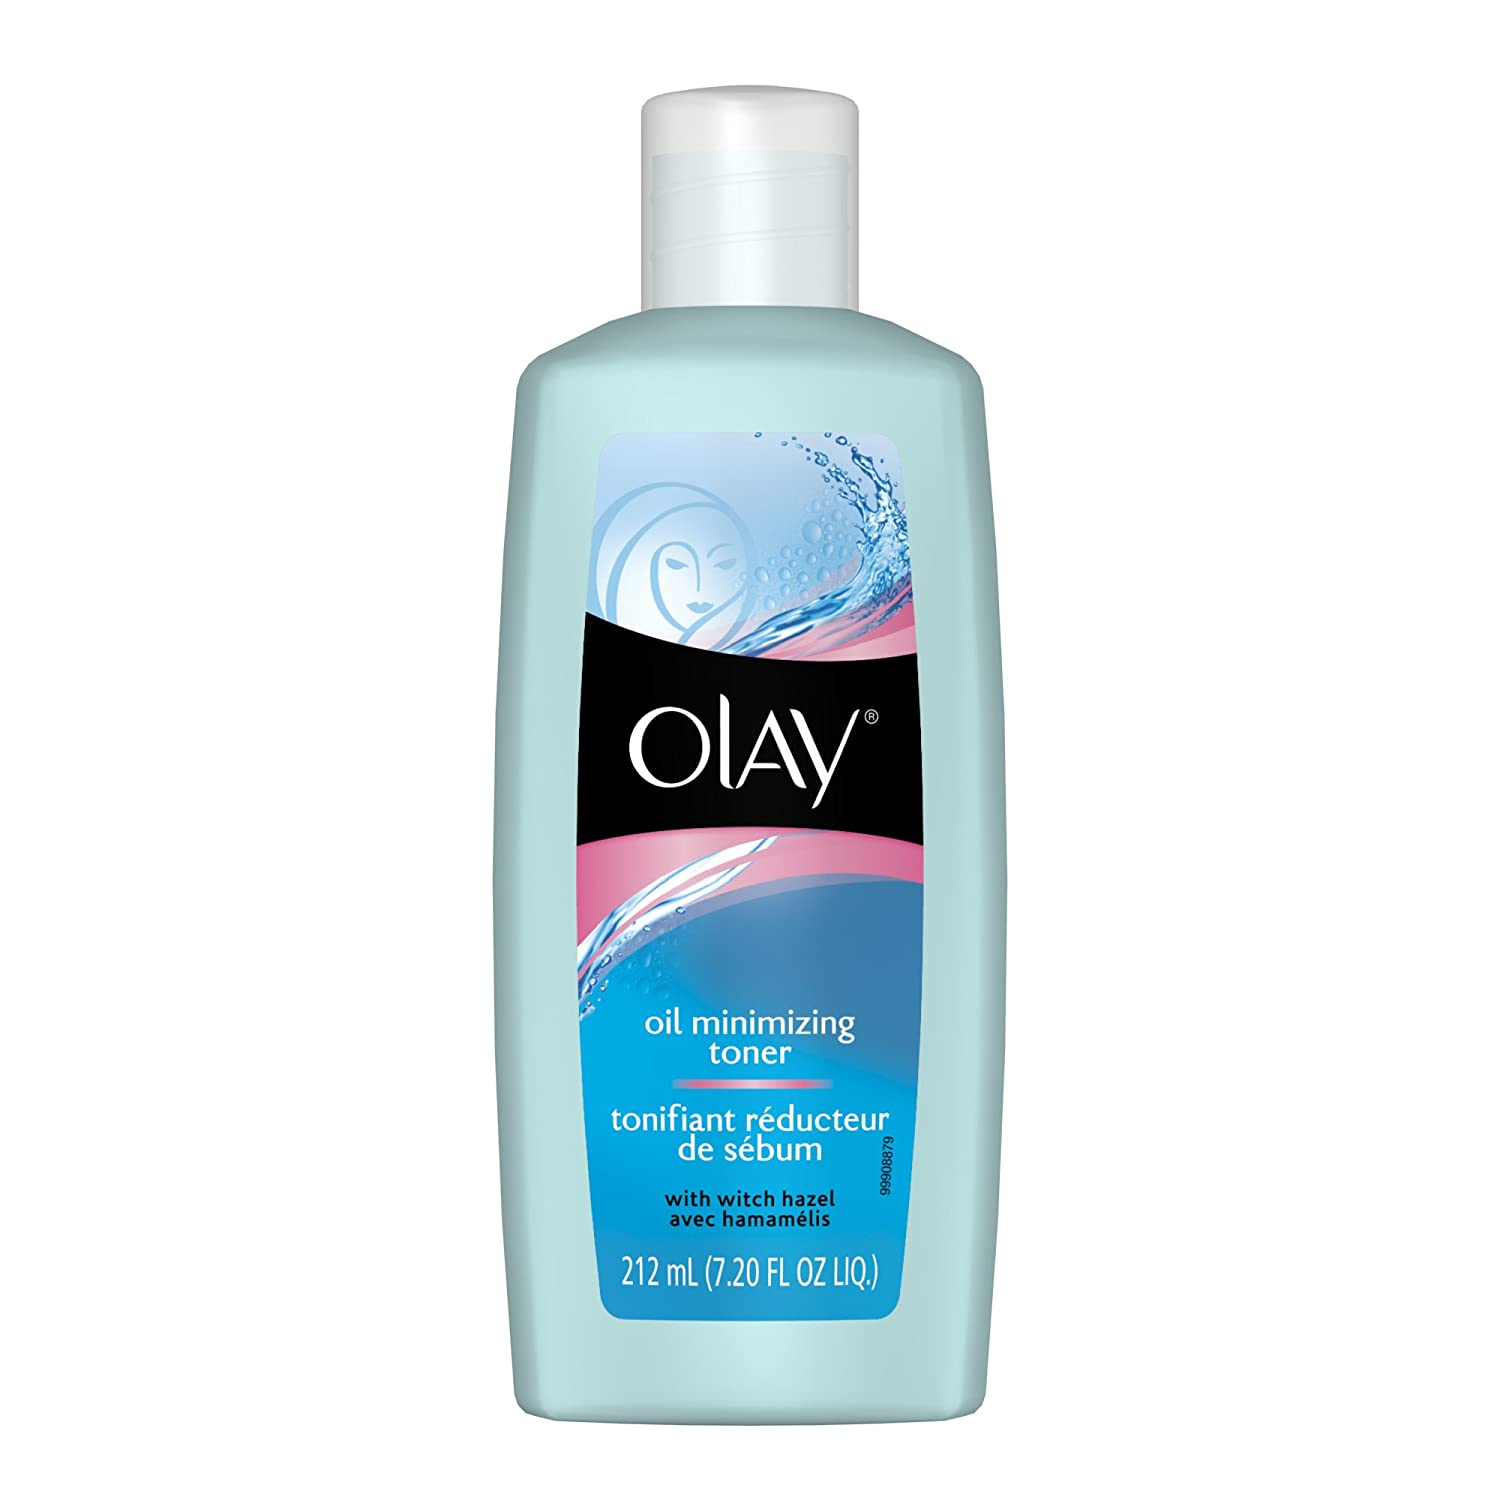 Olay Oil Minimizing Toner, 7.20-Ounce (Pack of 2) $5.58